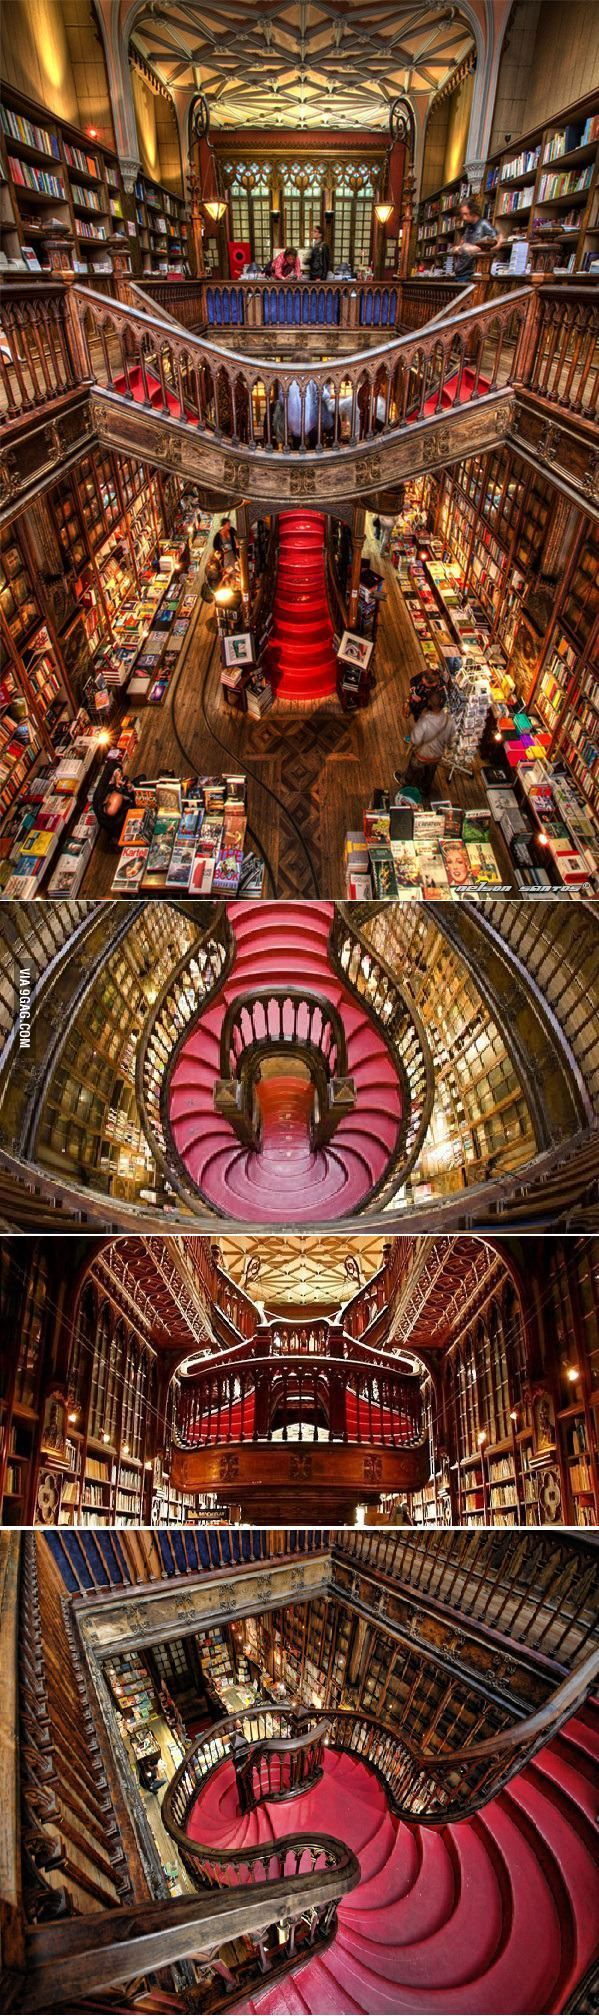 """Portugal's """"Livraria Lello & Irmão"""" Is Possibly The Most Beautiful Bookstore In The World"""